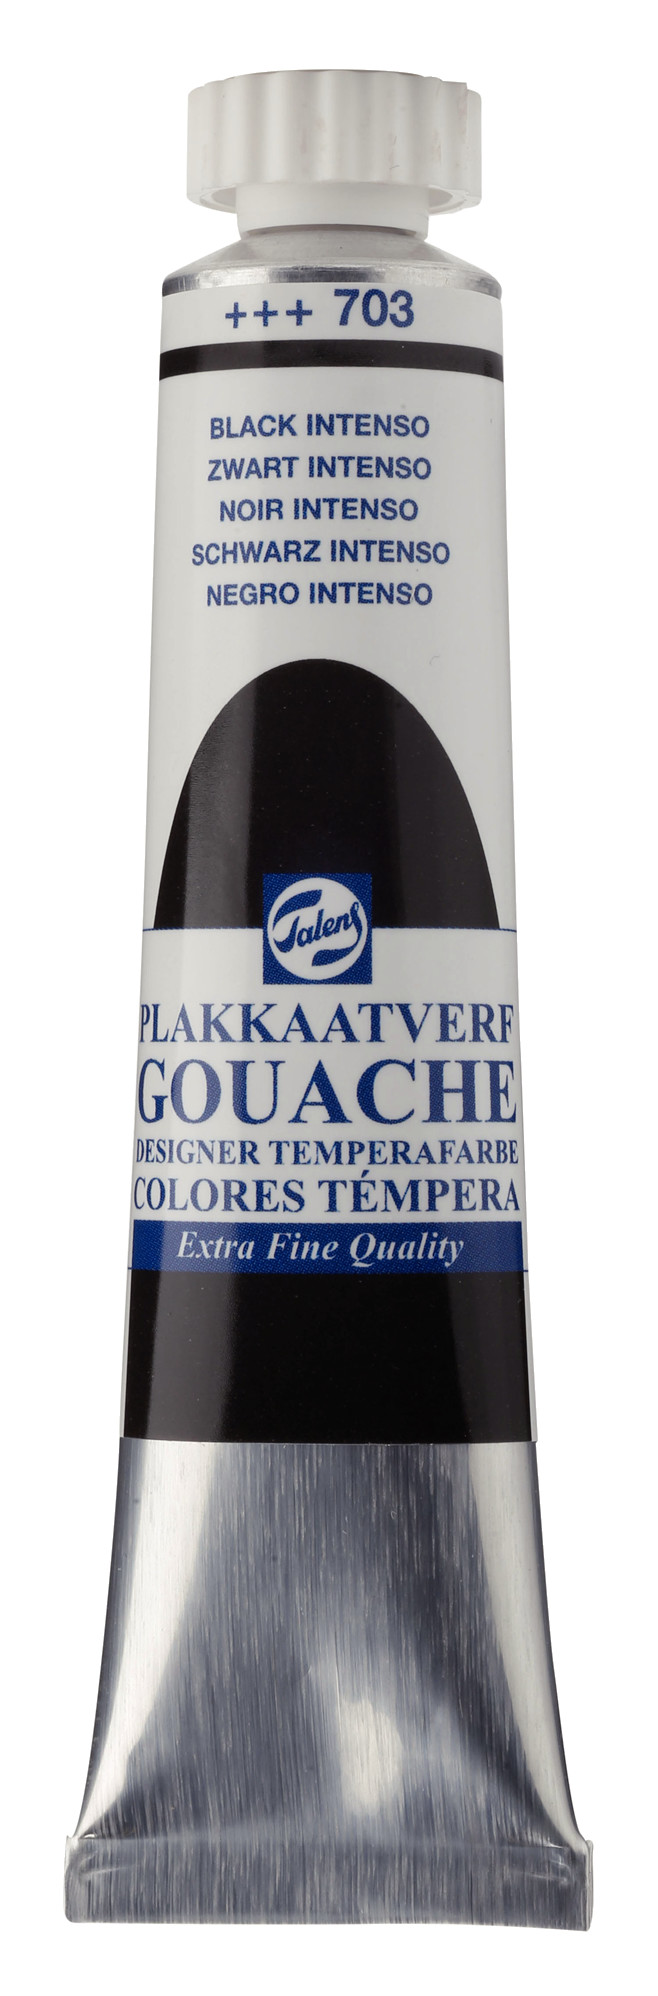 Gouache Extra Fine Quality Tube 20 ml Black Intenso 703